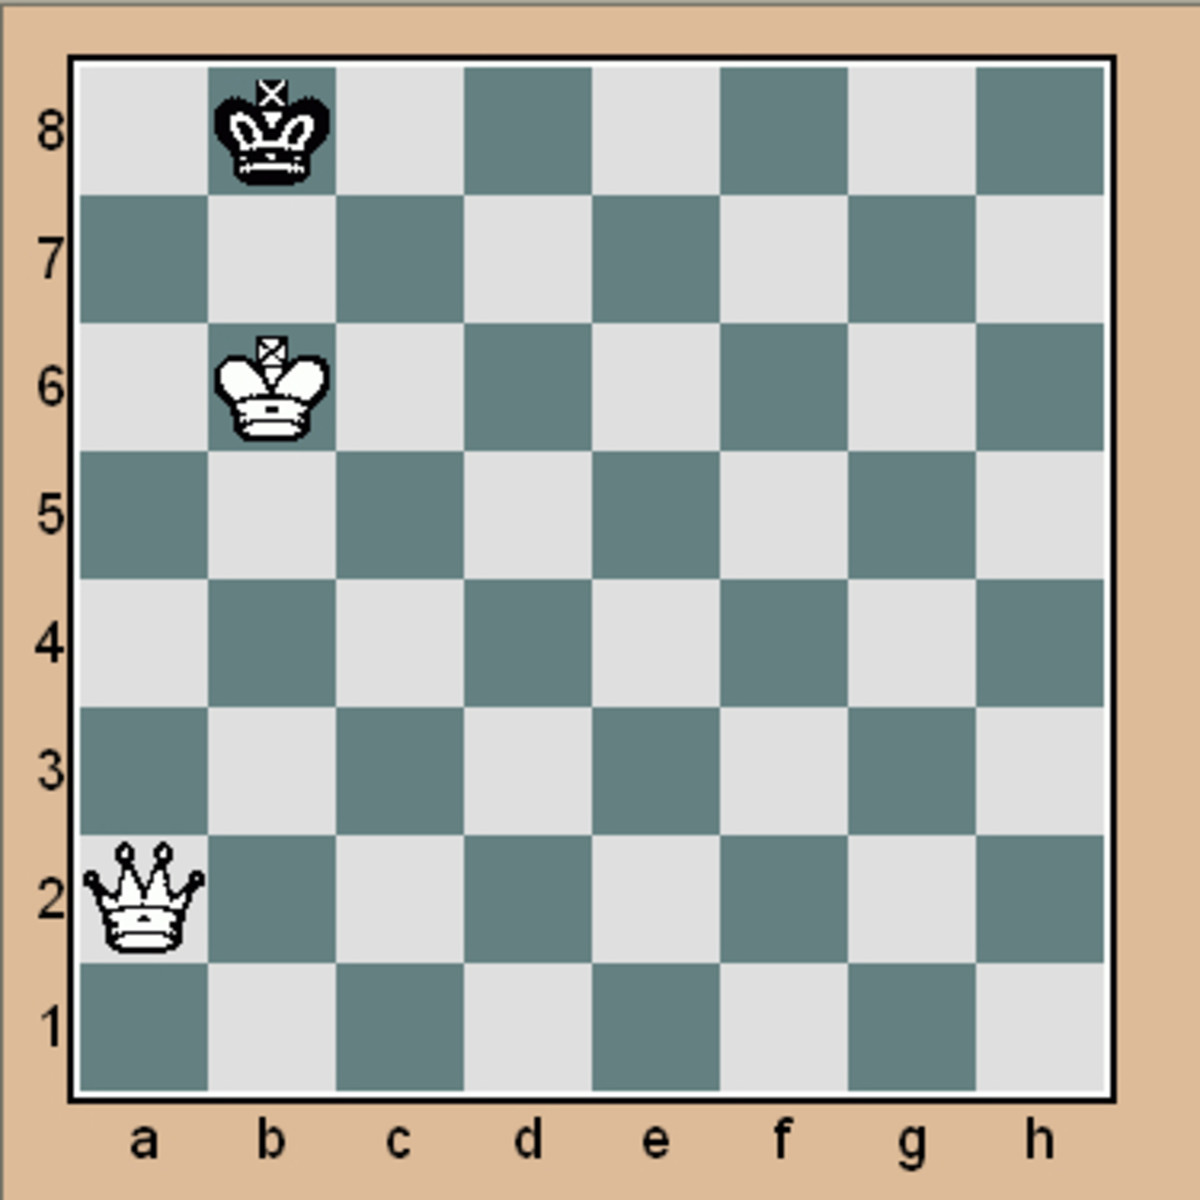 Please scroll down to see the beginner chess puzzles.